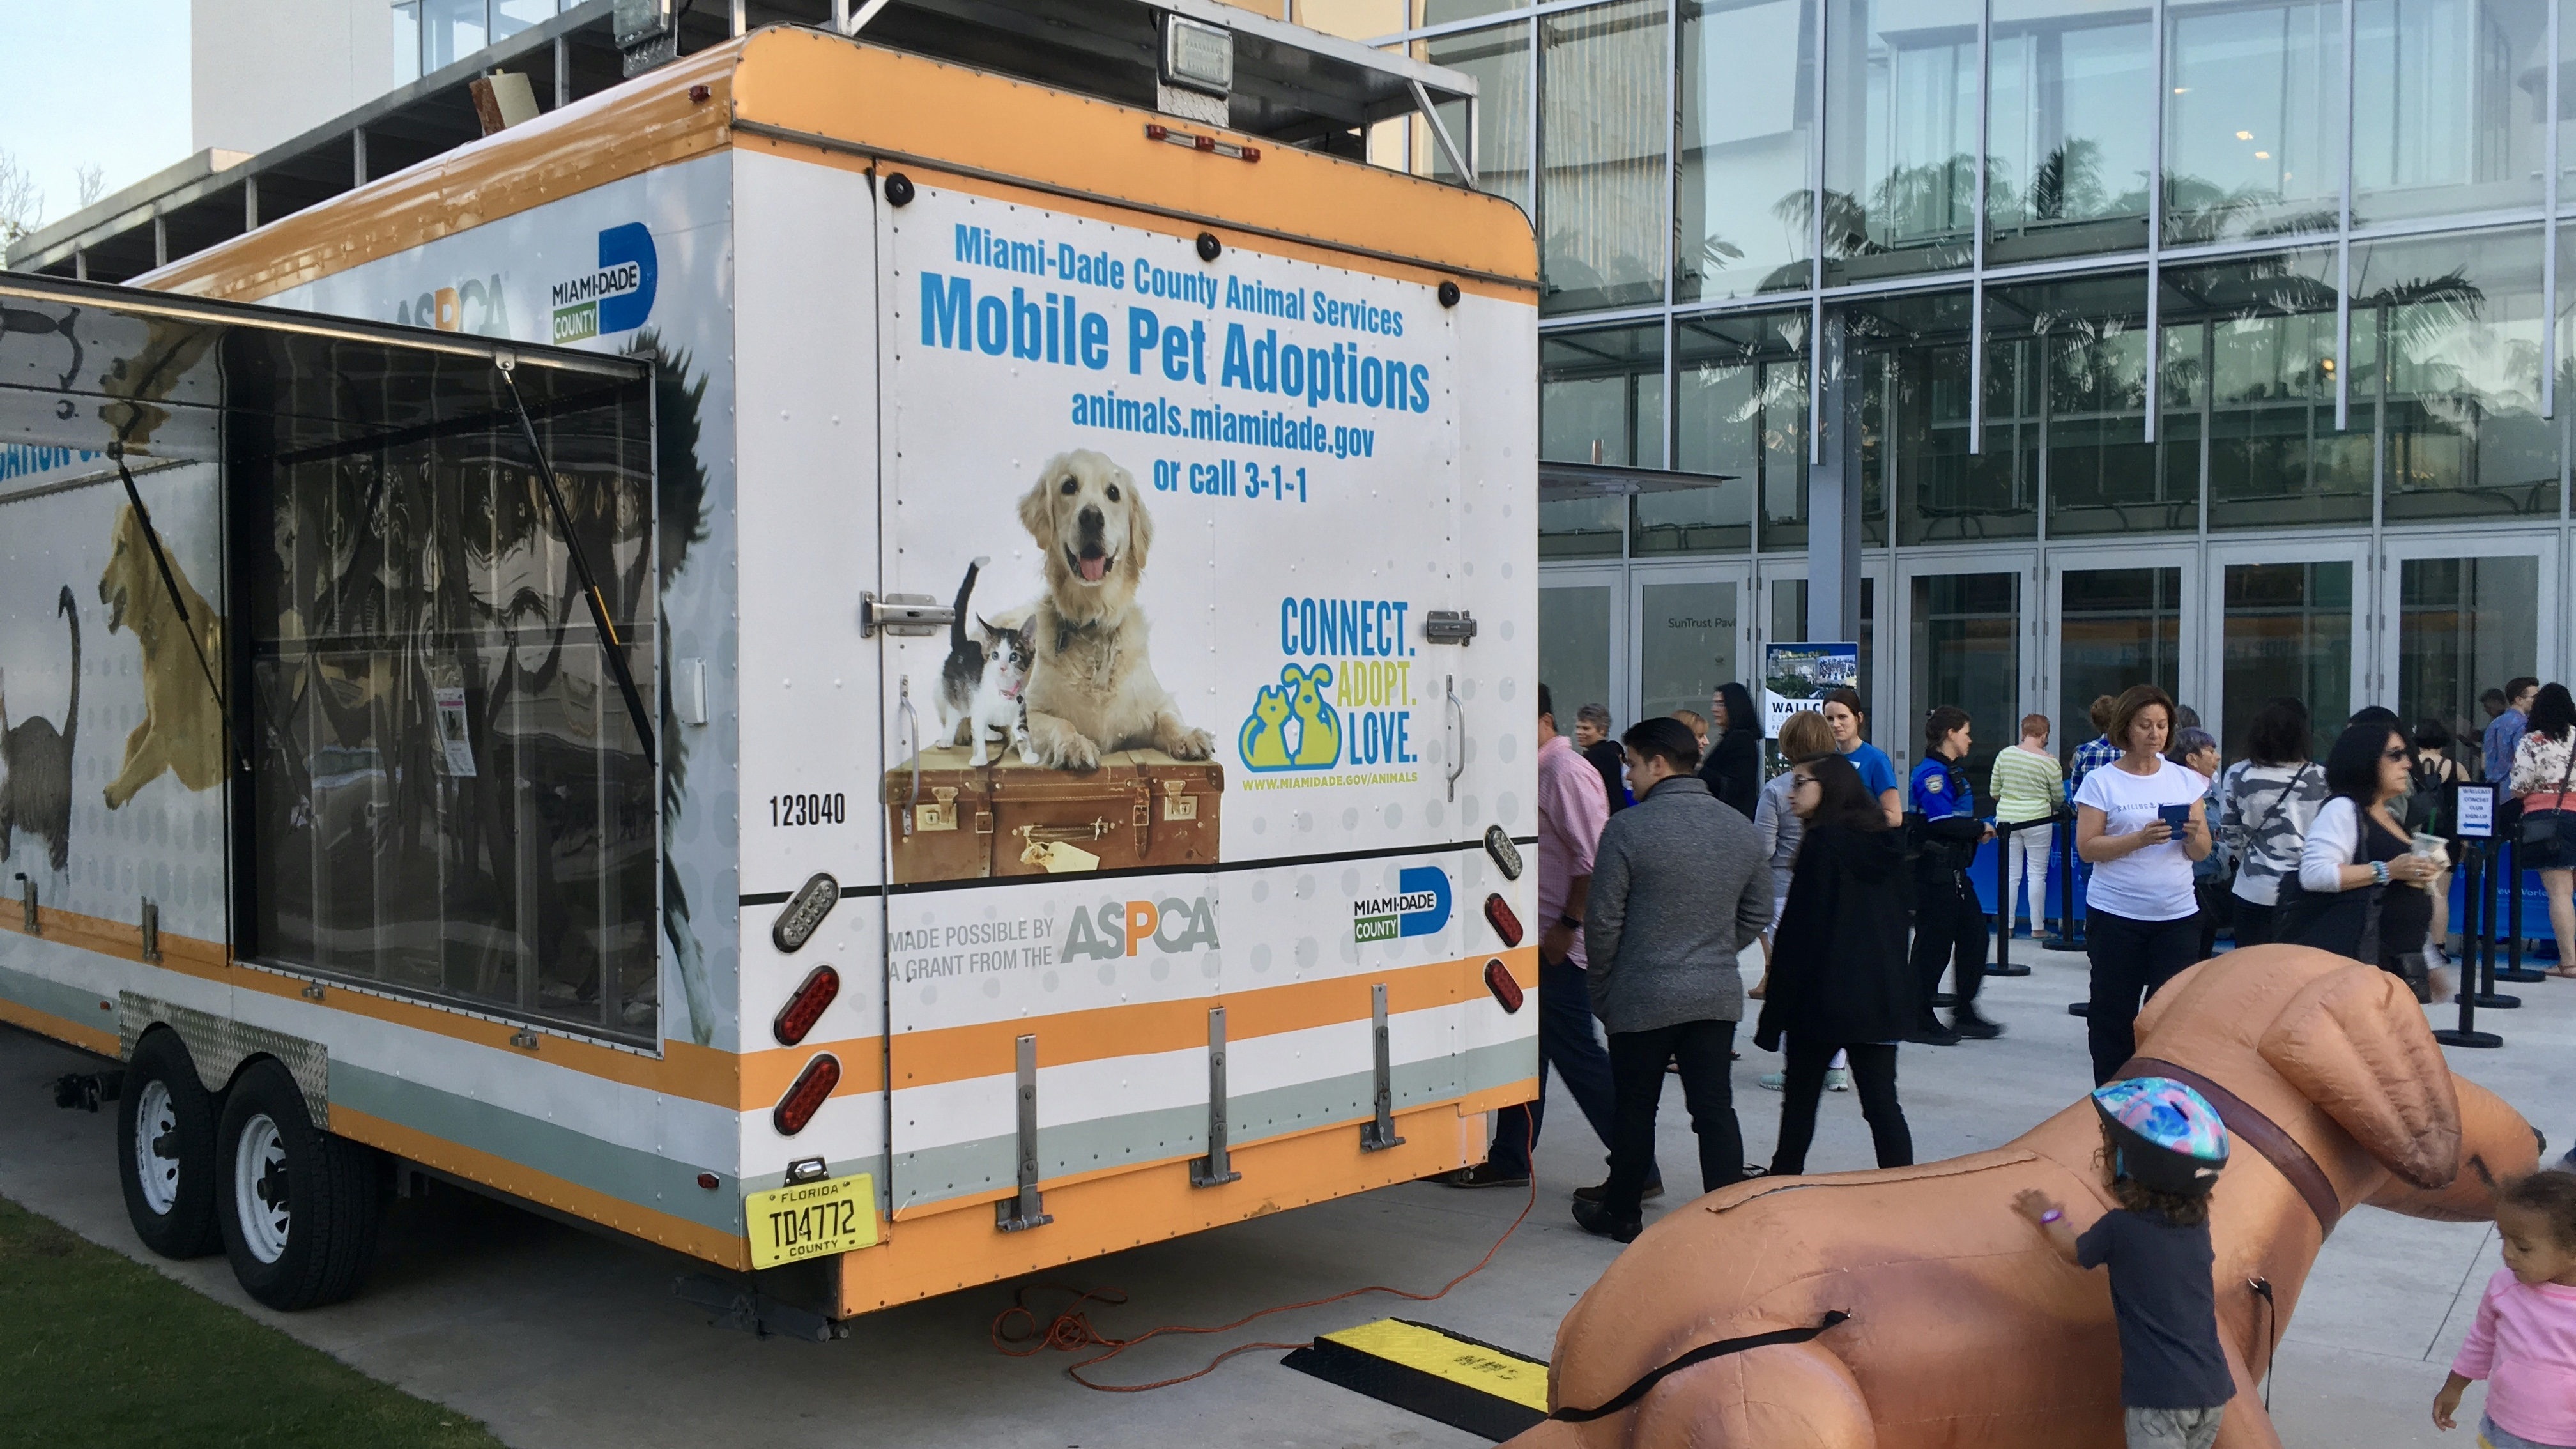 A pet adoption drive outside the New World Symphony concert in Miami, FL.